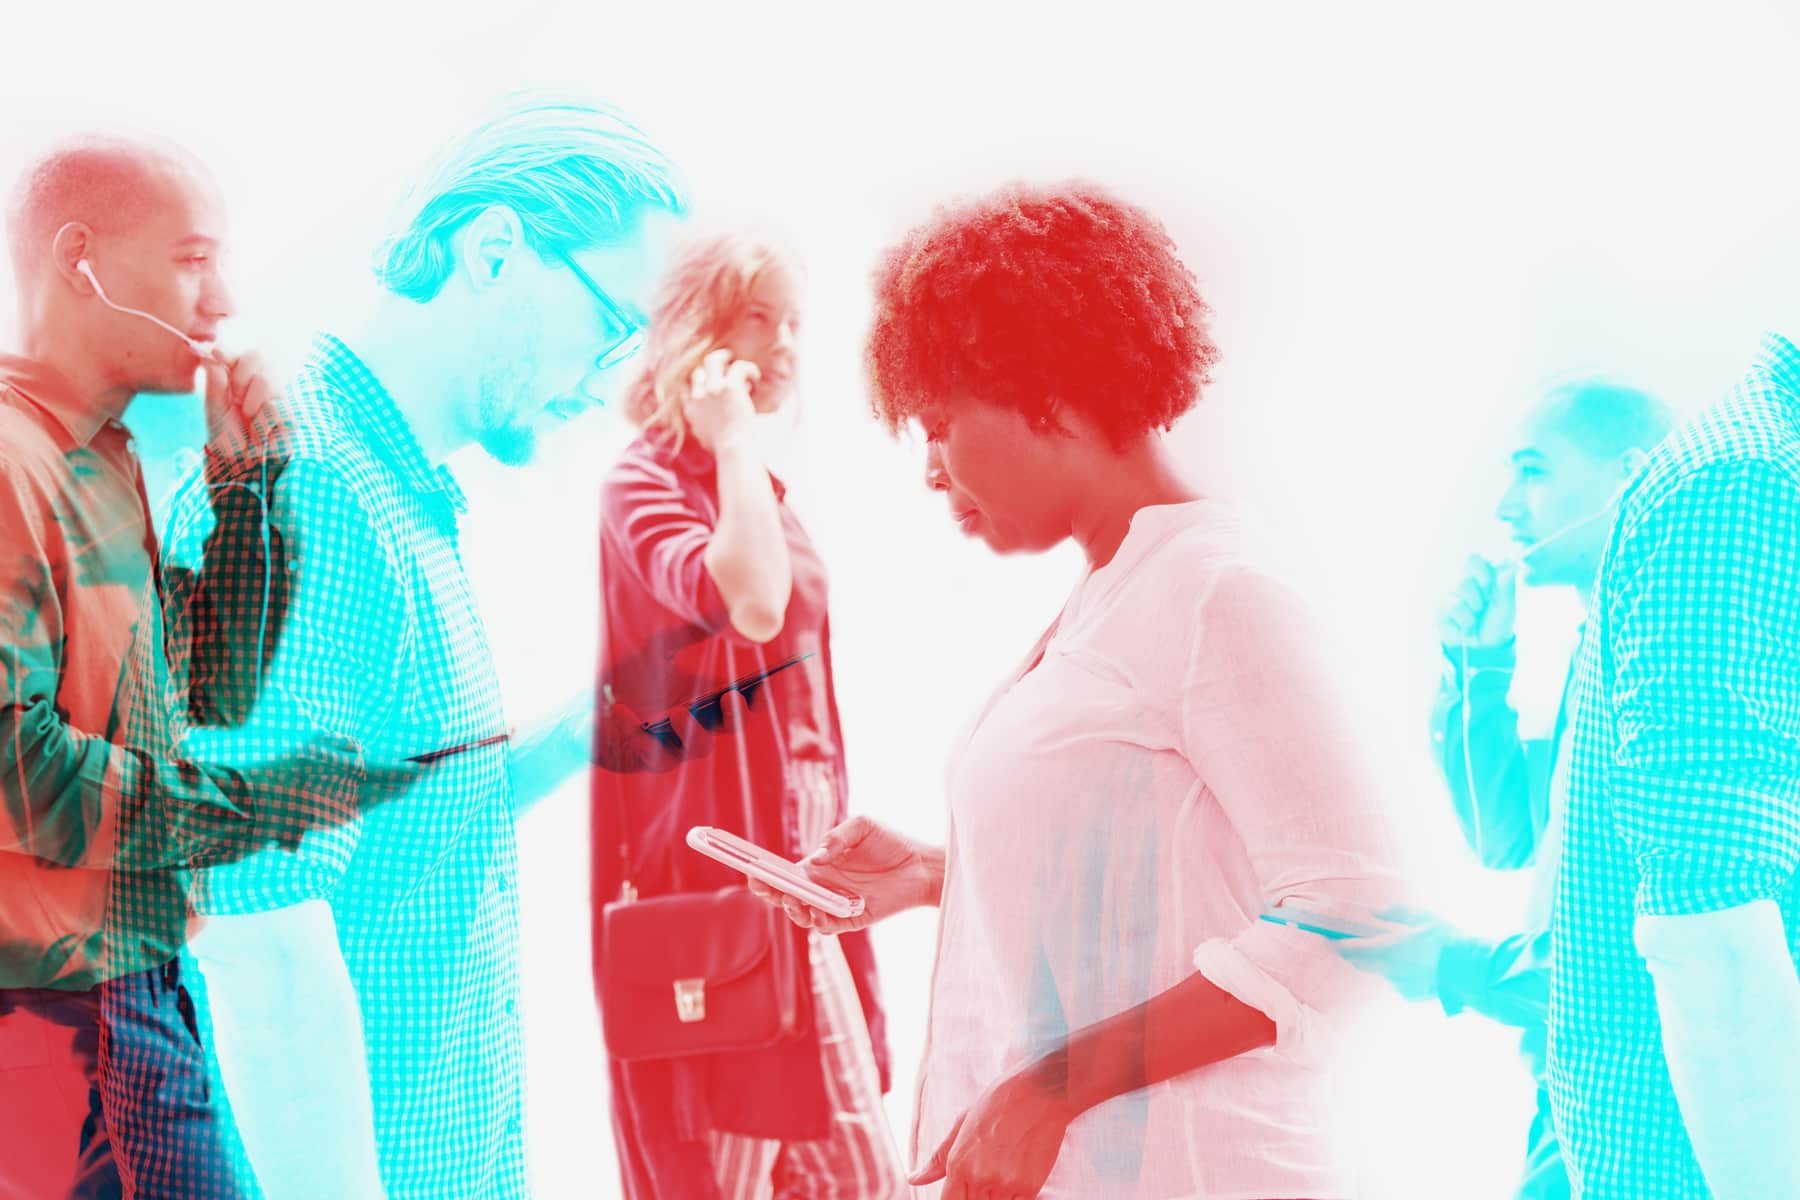 People using digital services optimized for their mobile devices in double colour exposure effect.